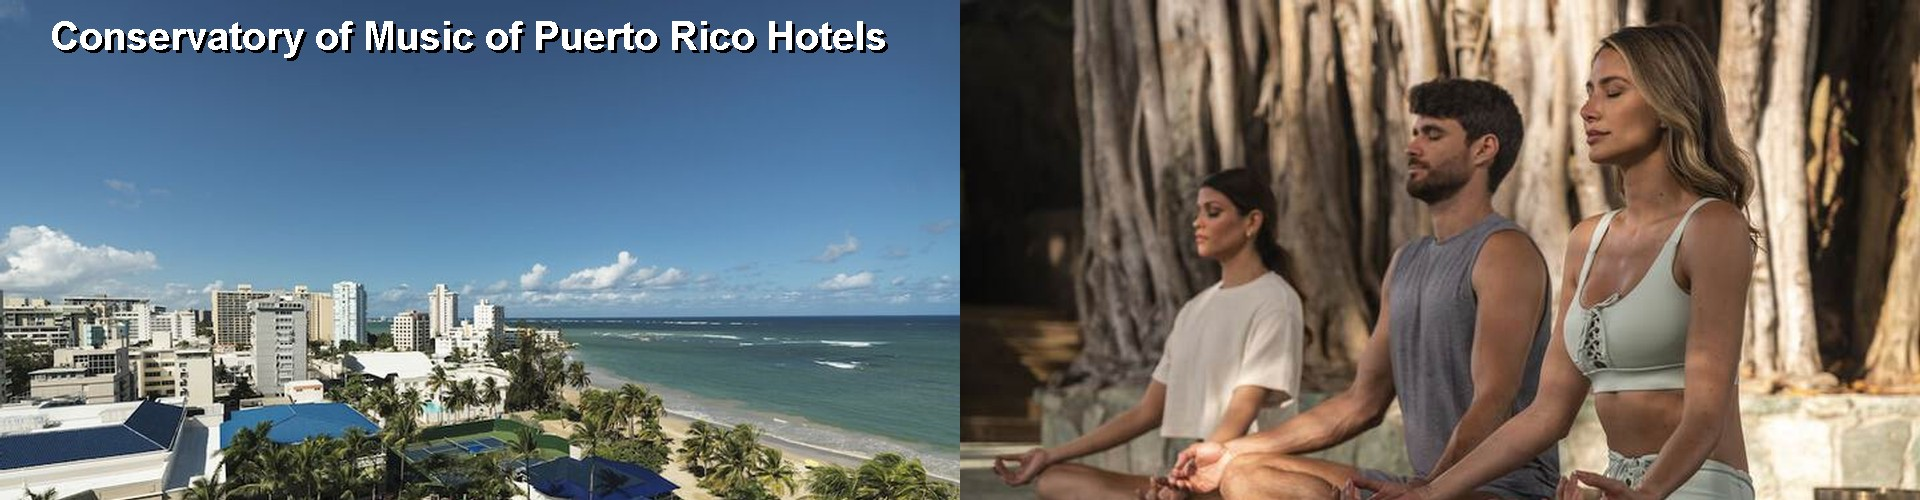 5 Best Hotels near Conservatory of Music of Puerto Rico